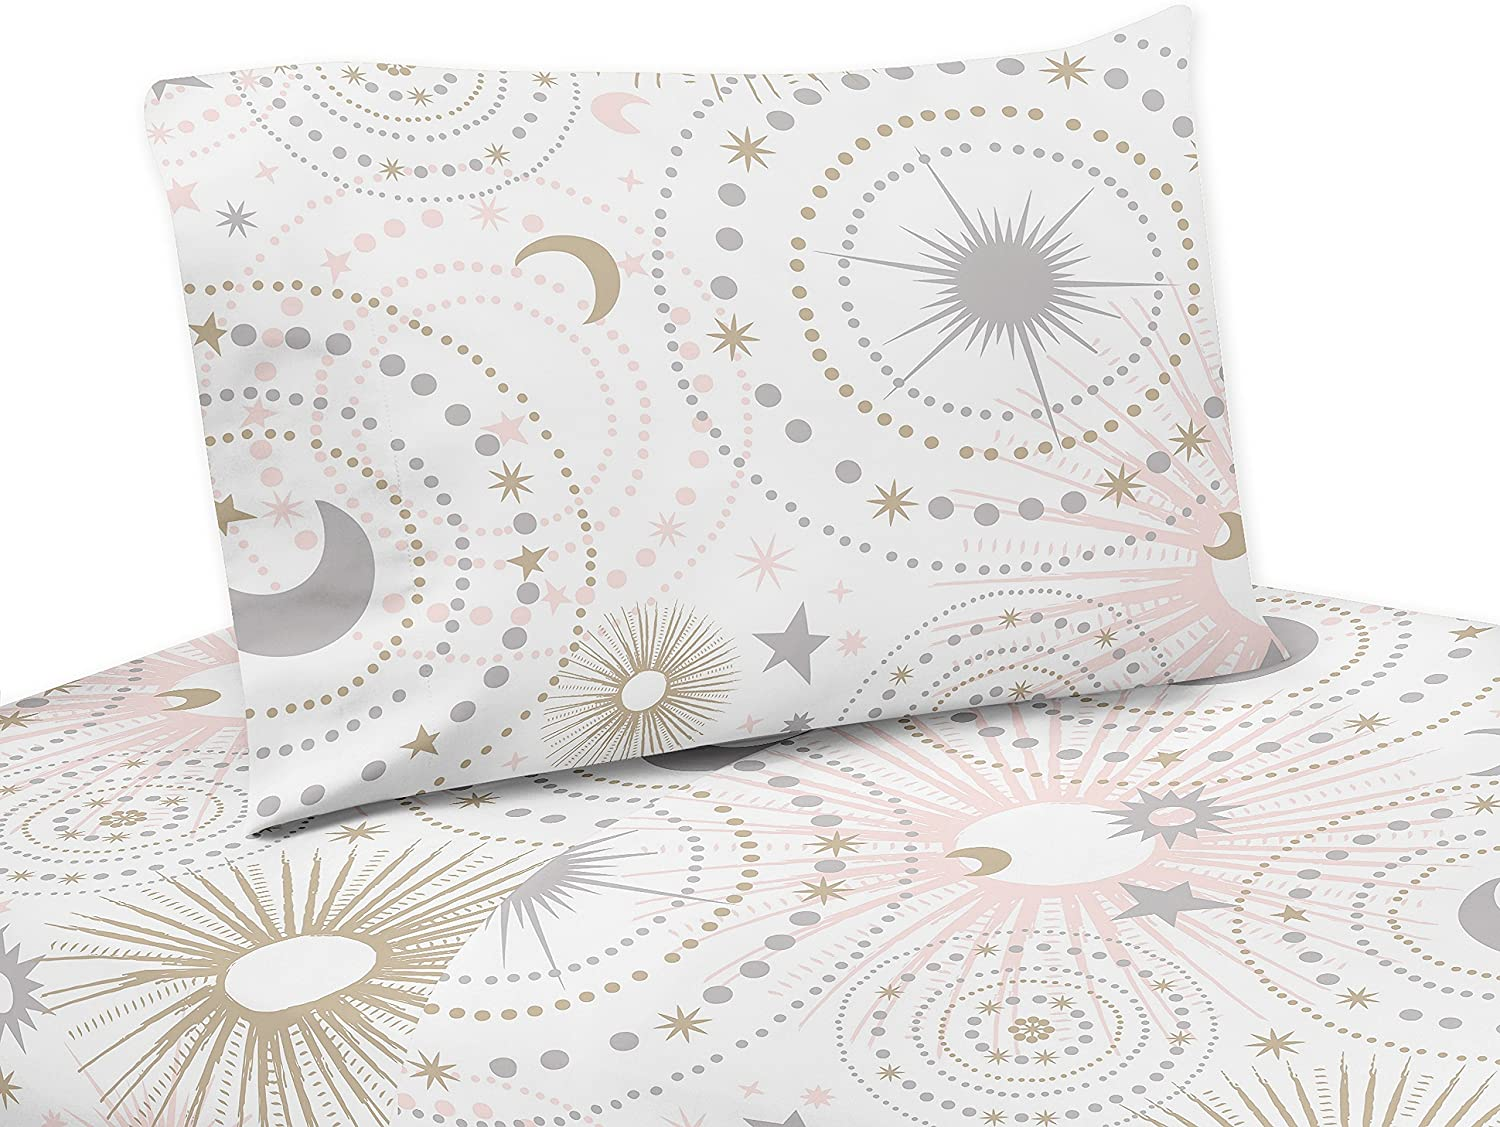 Sweet Jojo Designs 4-Piece bluesh Pink, gold, Grey and White Star and Moon Queen Sheet Set for Celestial Collection Set